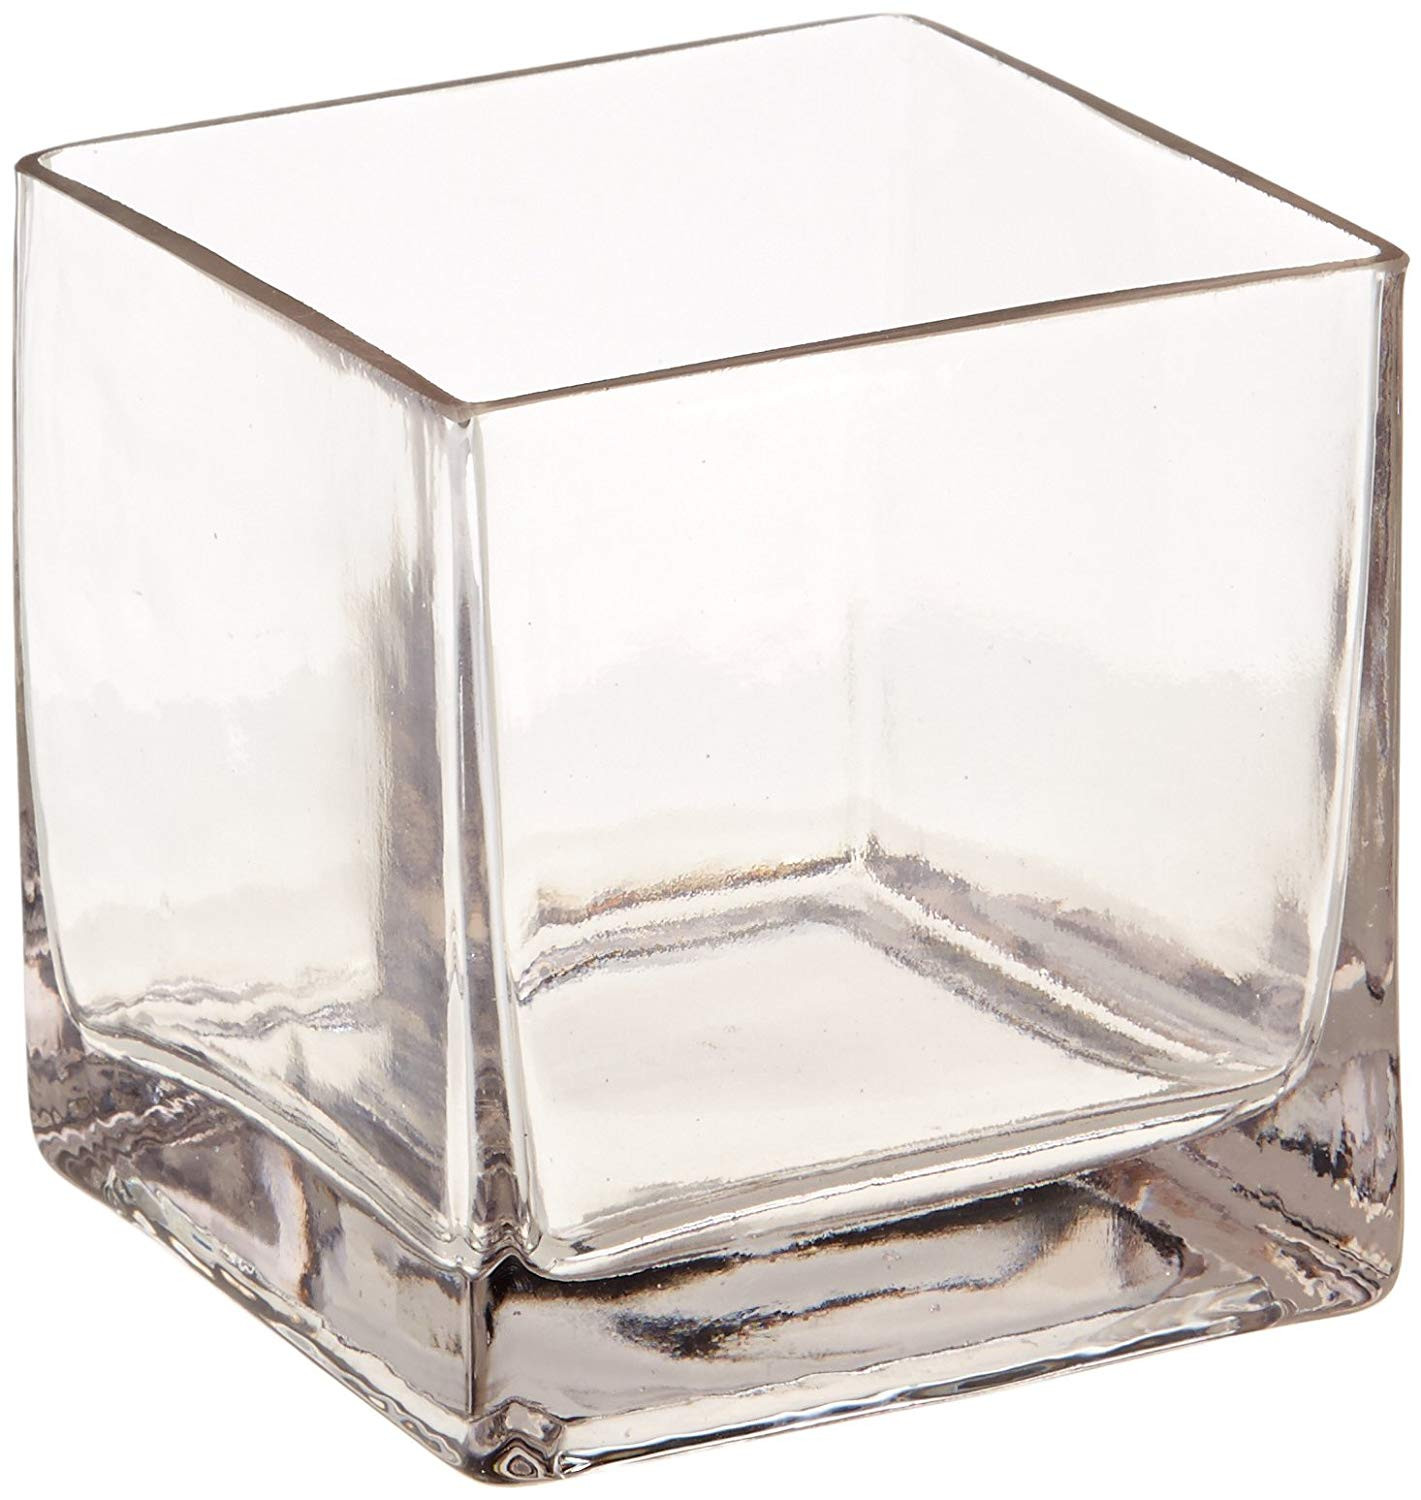 8 Inch Wide Cylinder Vase Of Amazon Com 12piece 4 Square Crystal Clear Glass Vase Home Kitchen for 71 Jezfmvnl Sl1500